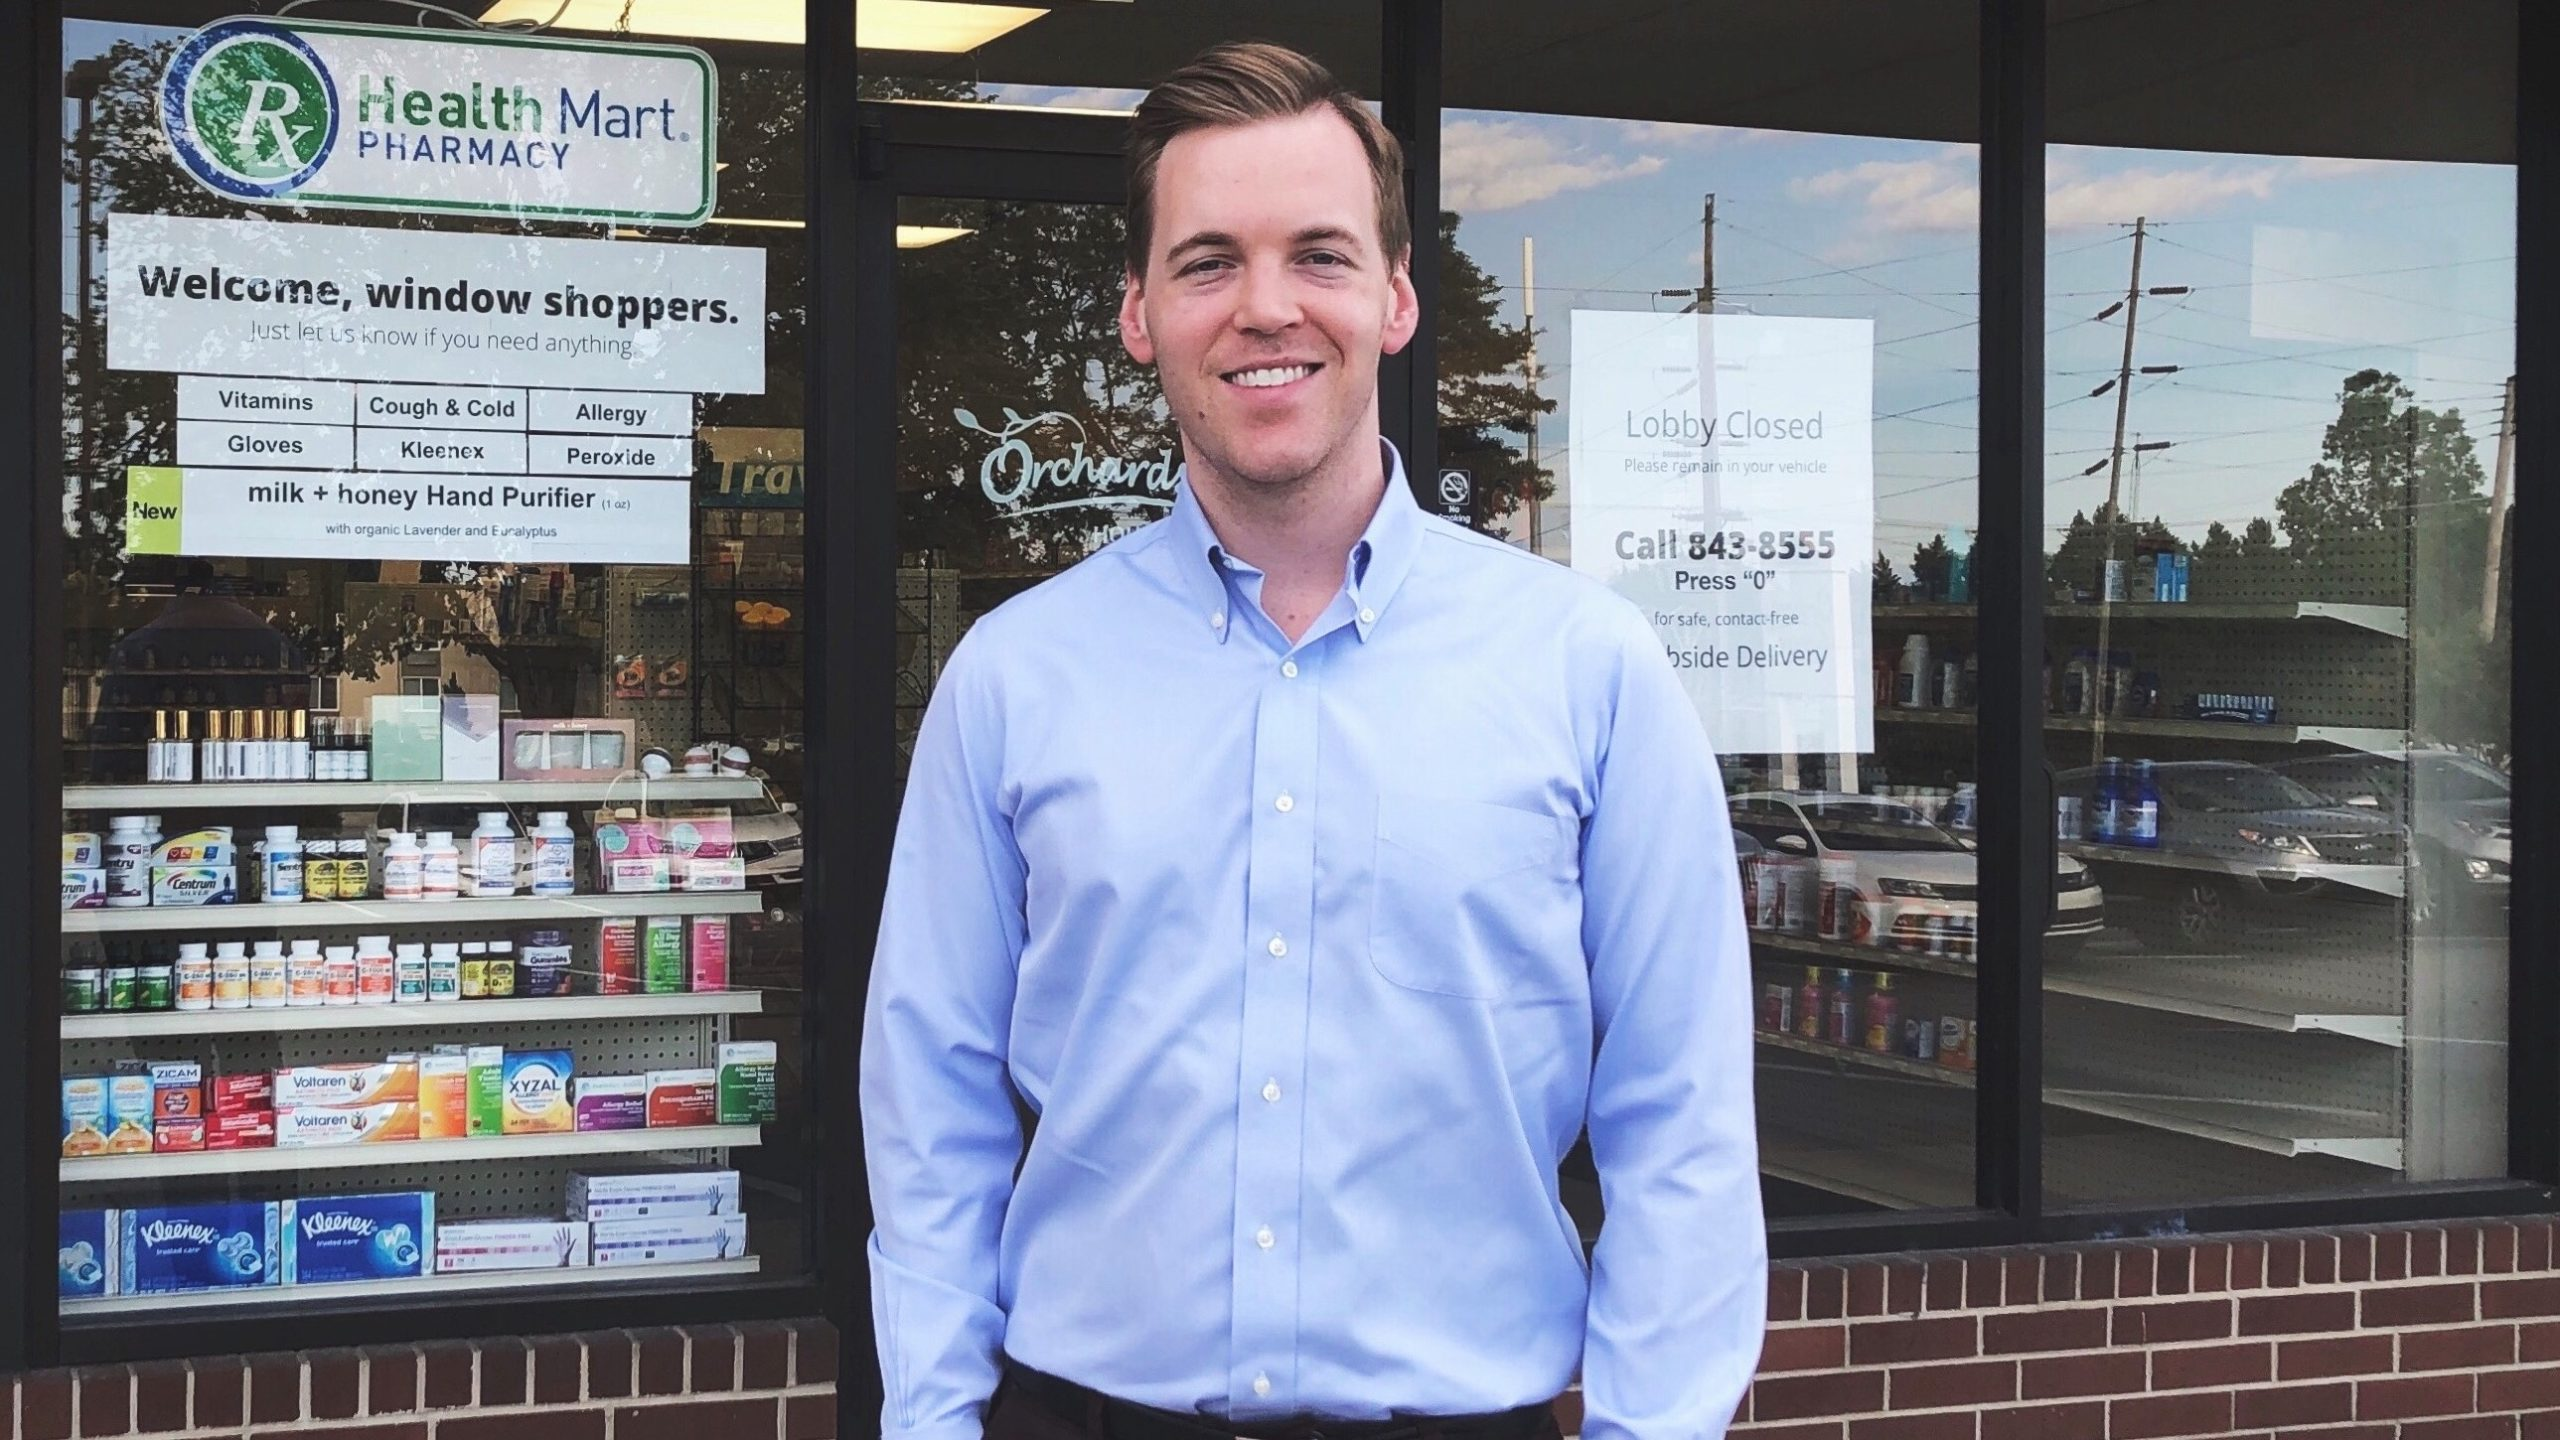 Pharmacist Spotlight: Will Anderson